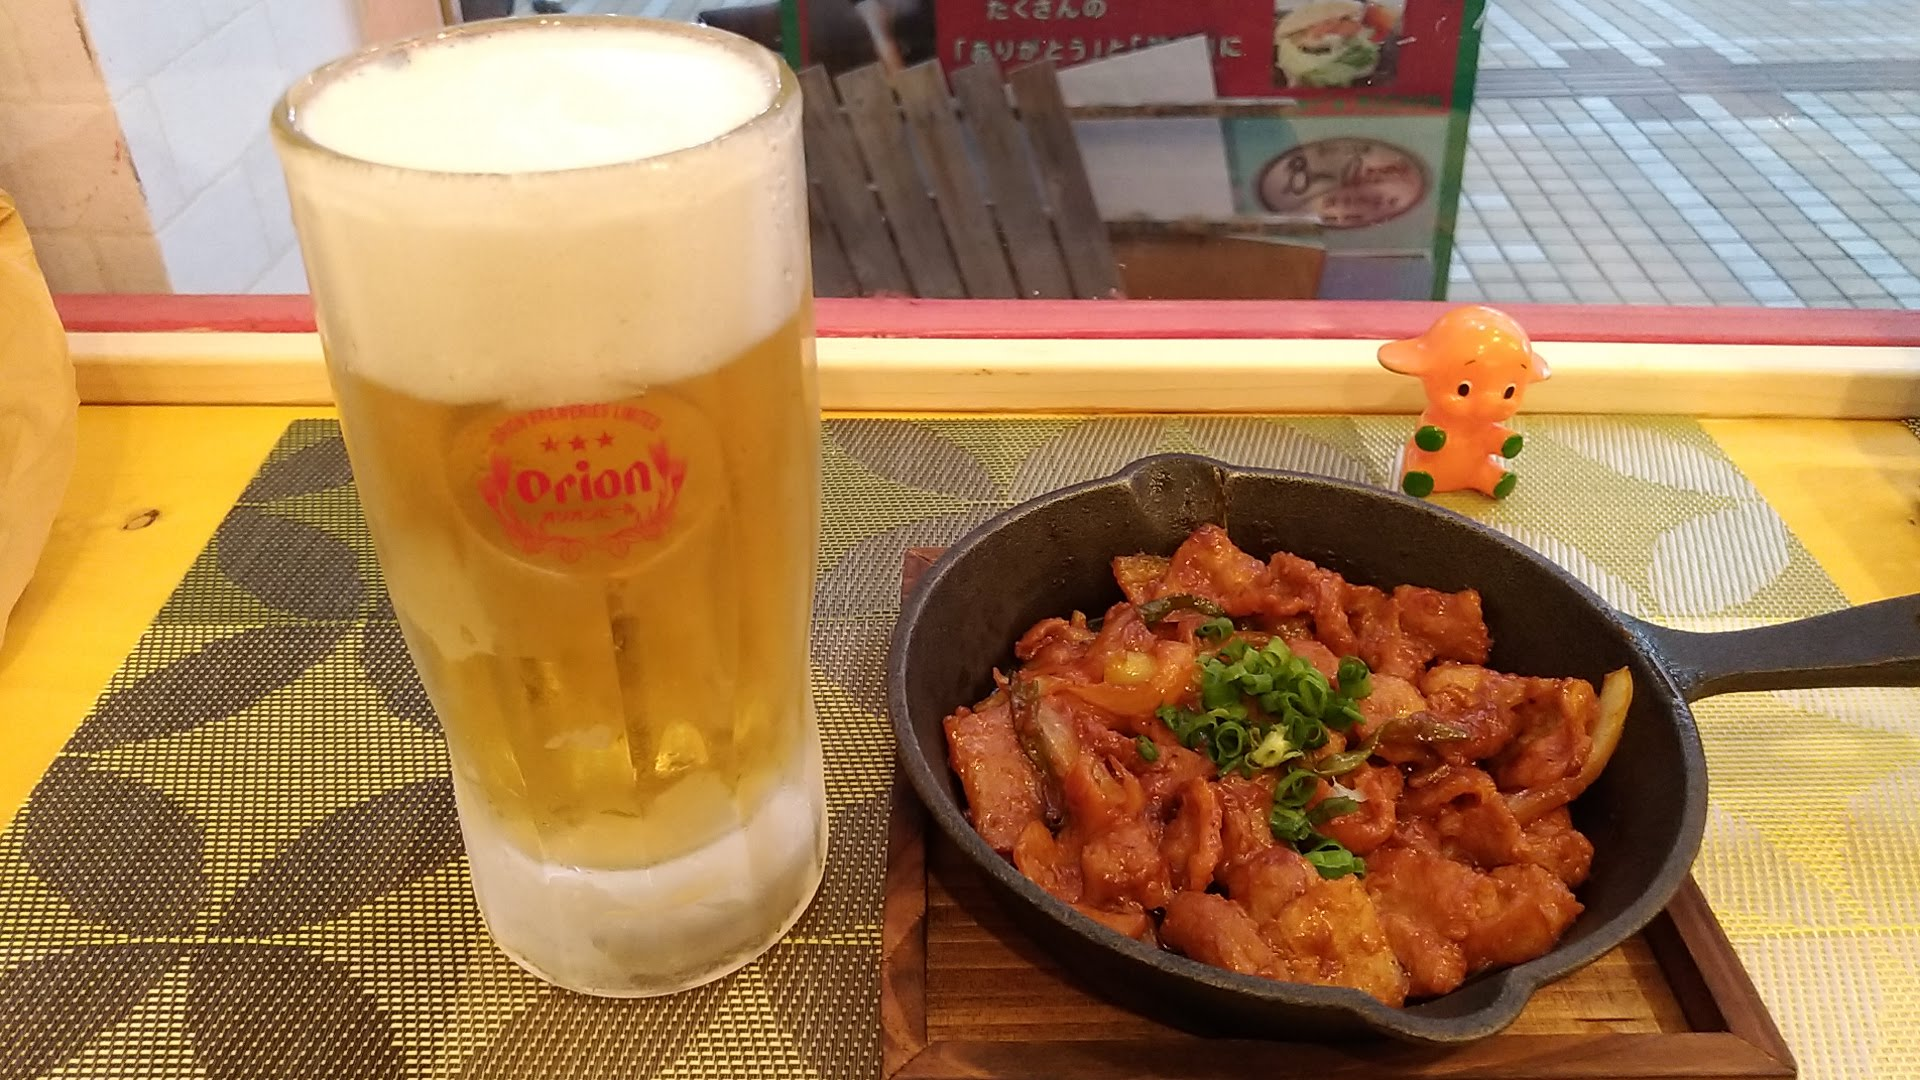 Draft beer and Dejipurukogi